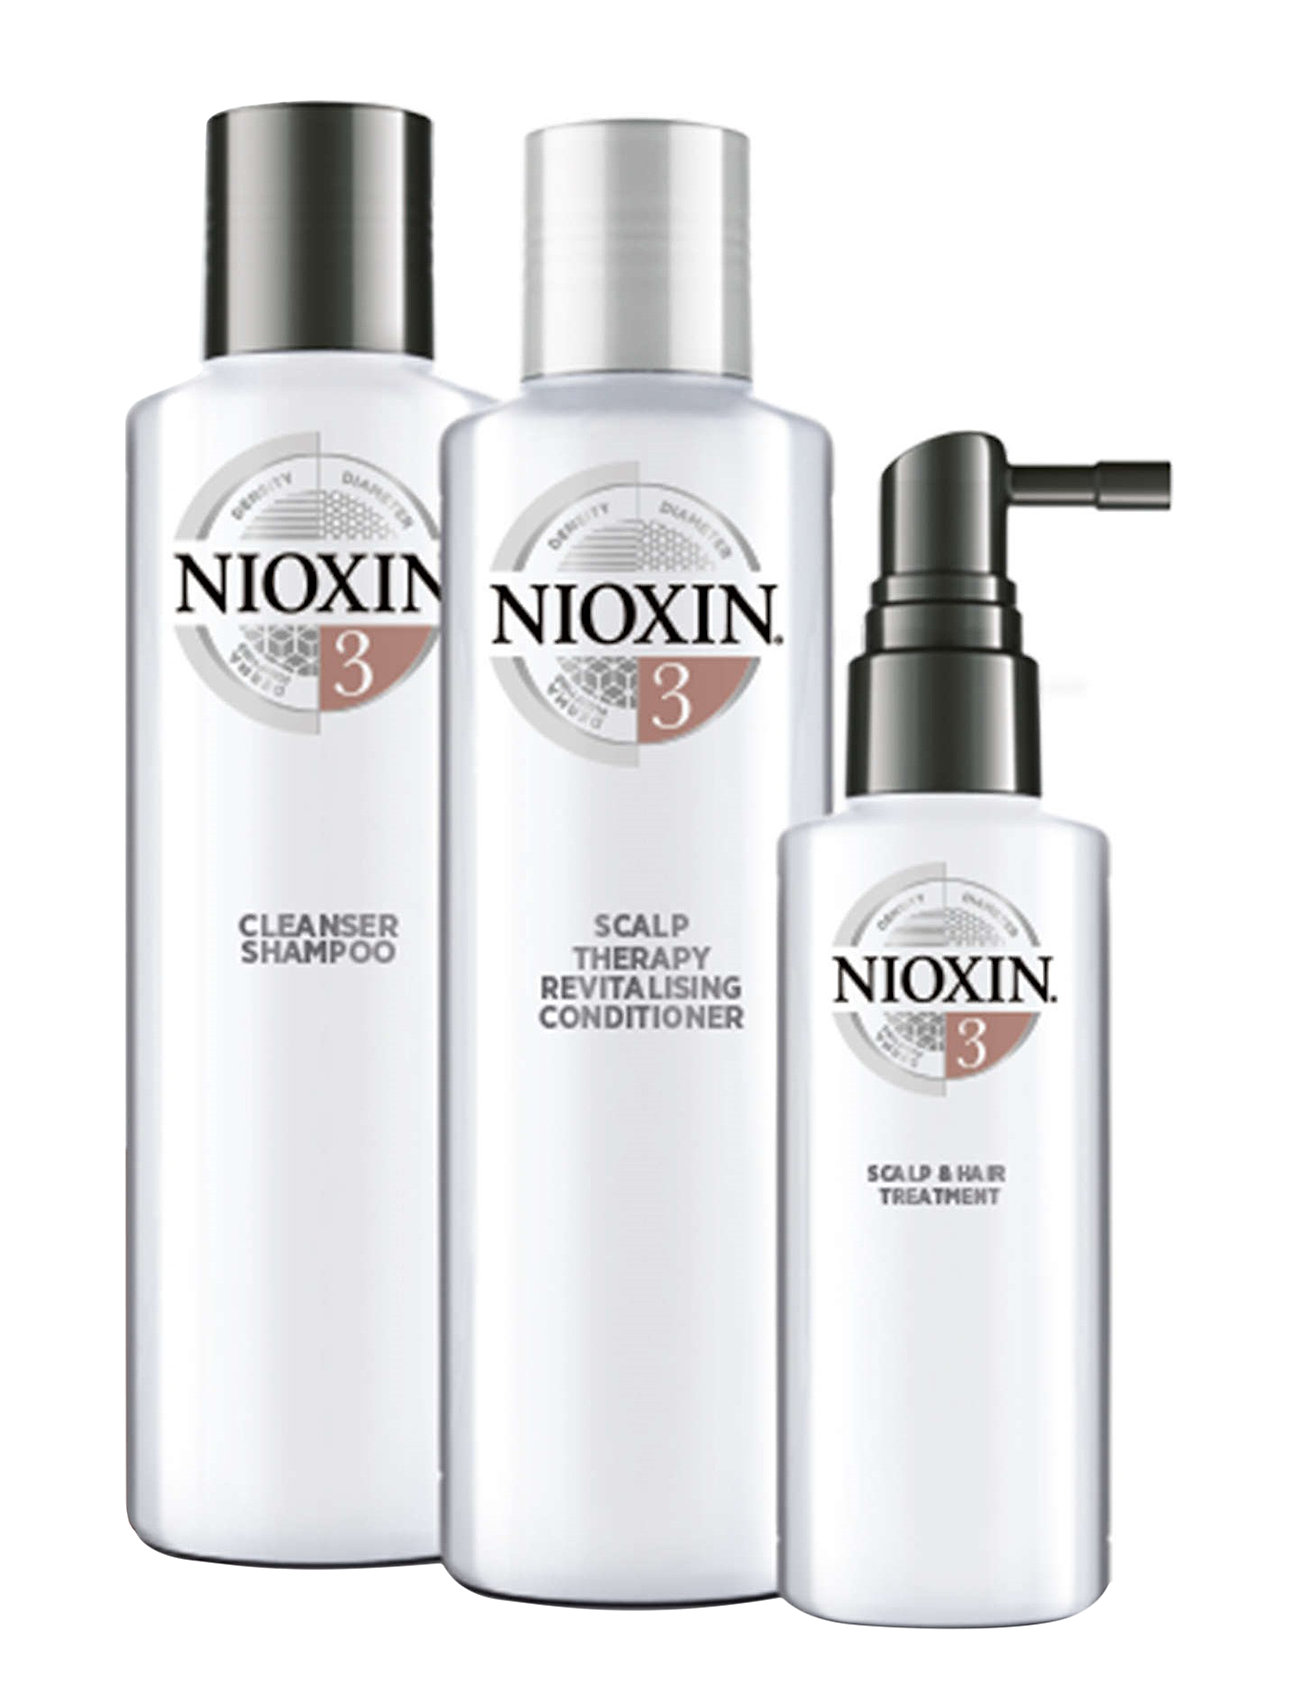 Image of Loyalty Kit System 3 Beauty MEN ALL SETS Nude Nioxin (3262246889)